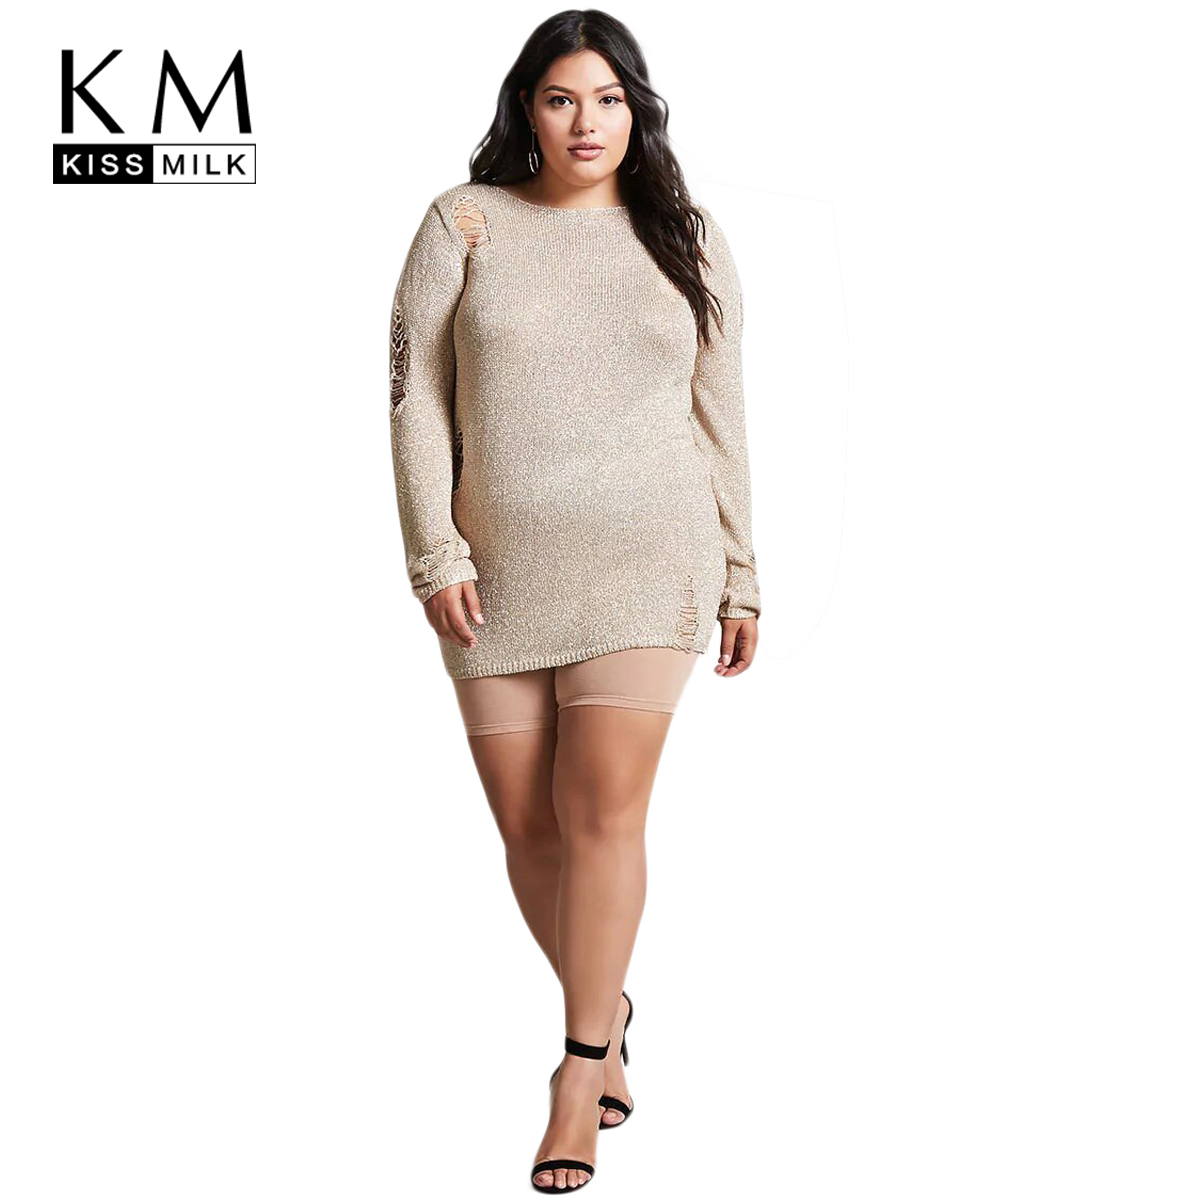 US $23.55 30% OFF|Kissmilk 2018 Plus Size Hollow Out Women Sweater Dress  Large Size Long Sleeve Sqeuin Female Clothing Big Size Lady Pullovers-in ...